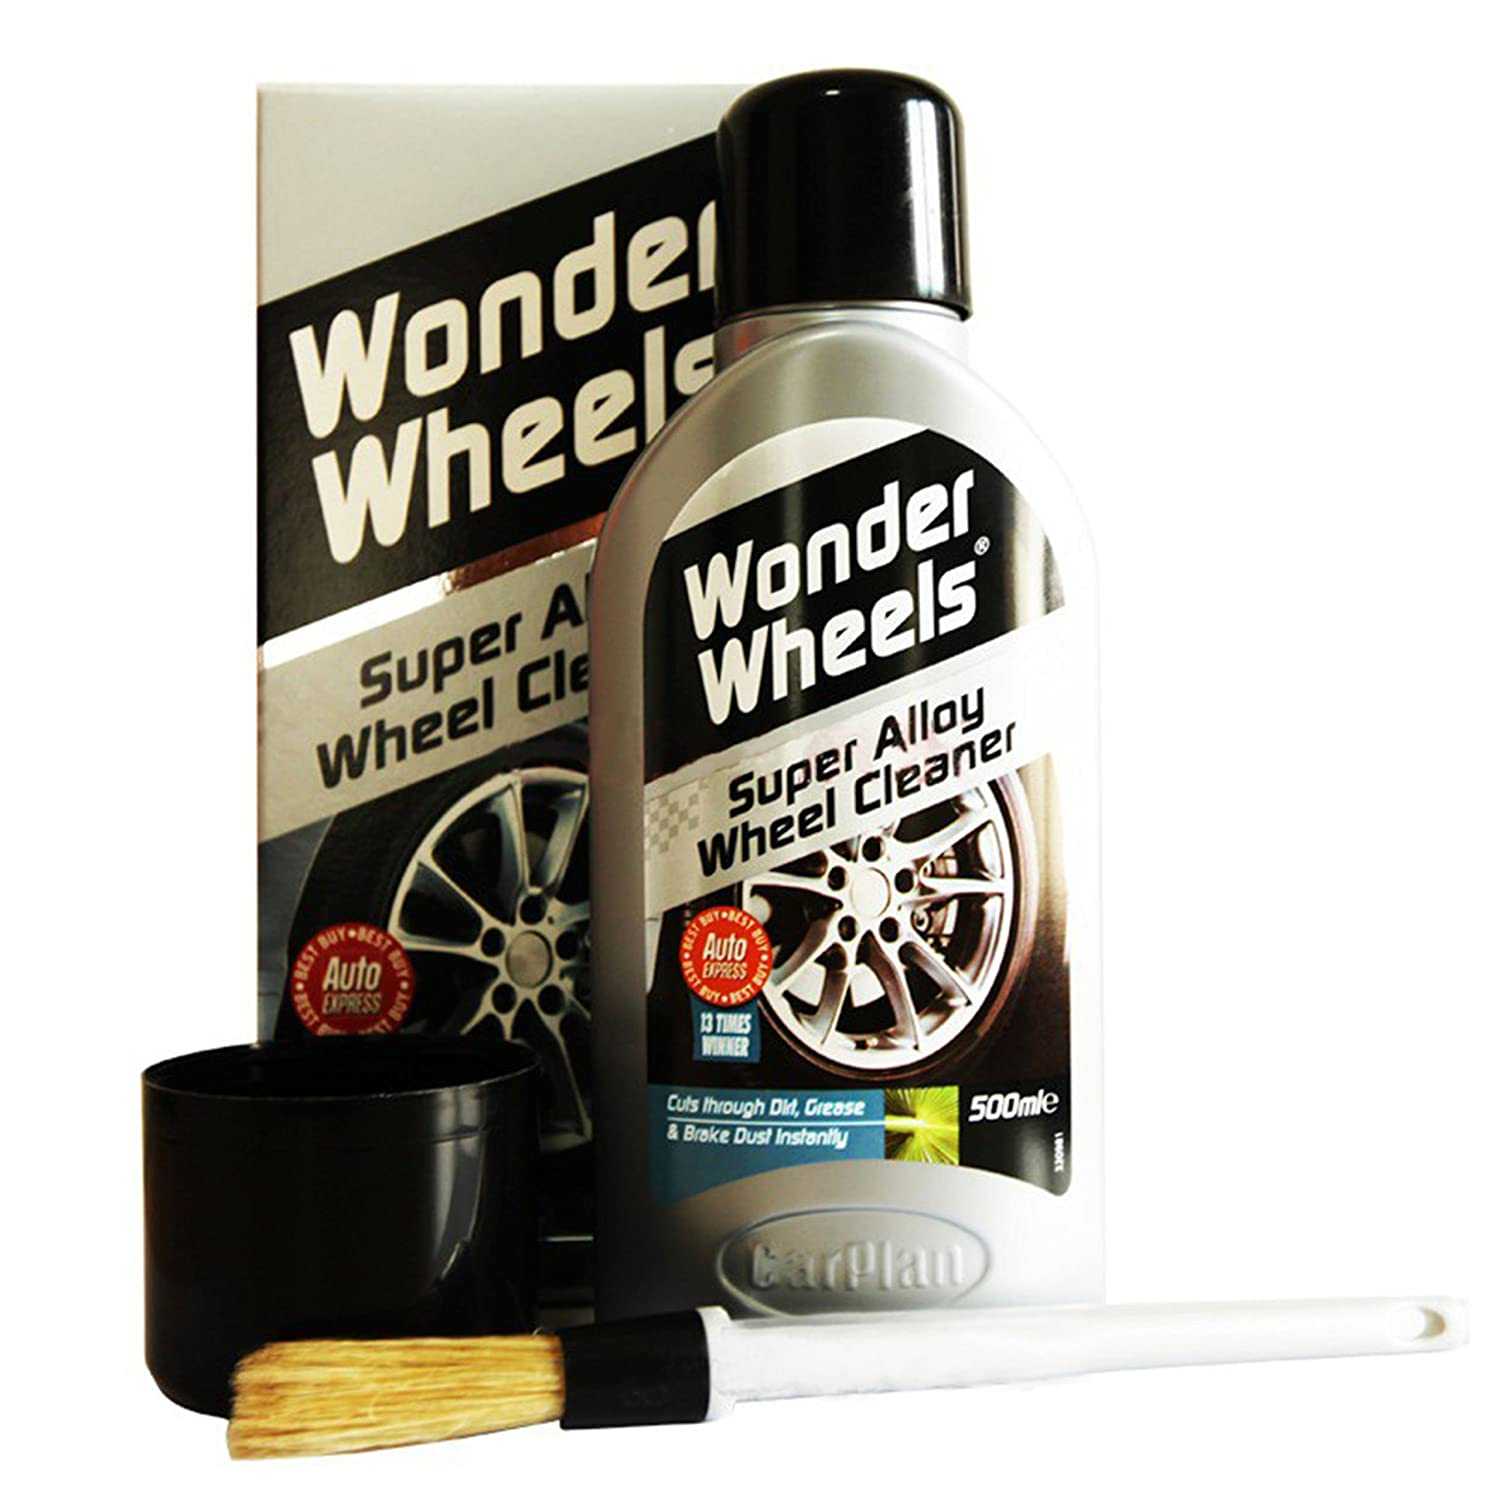 Wonder Wheels Super Alloy Wheel Cleaner, 5 Litre Tetrosyl Ltd WWC005